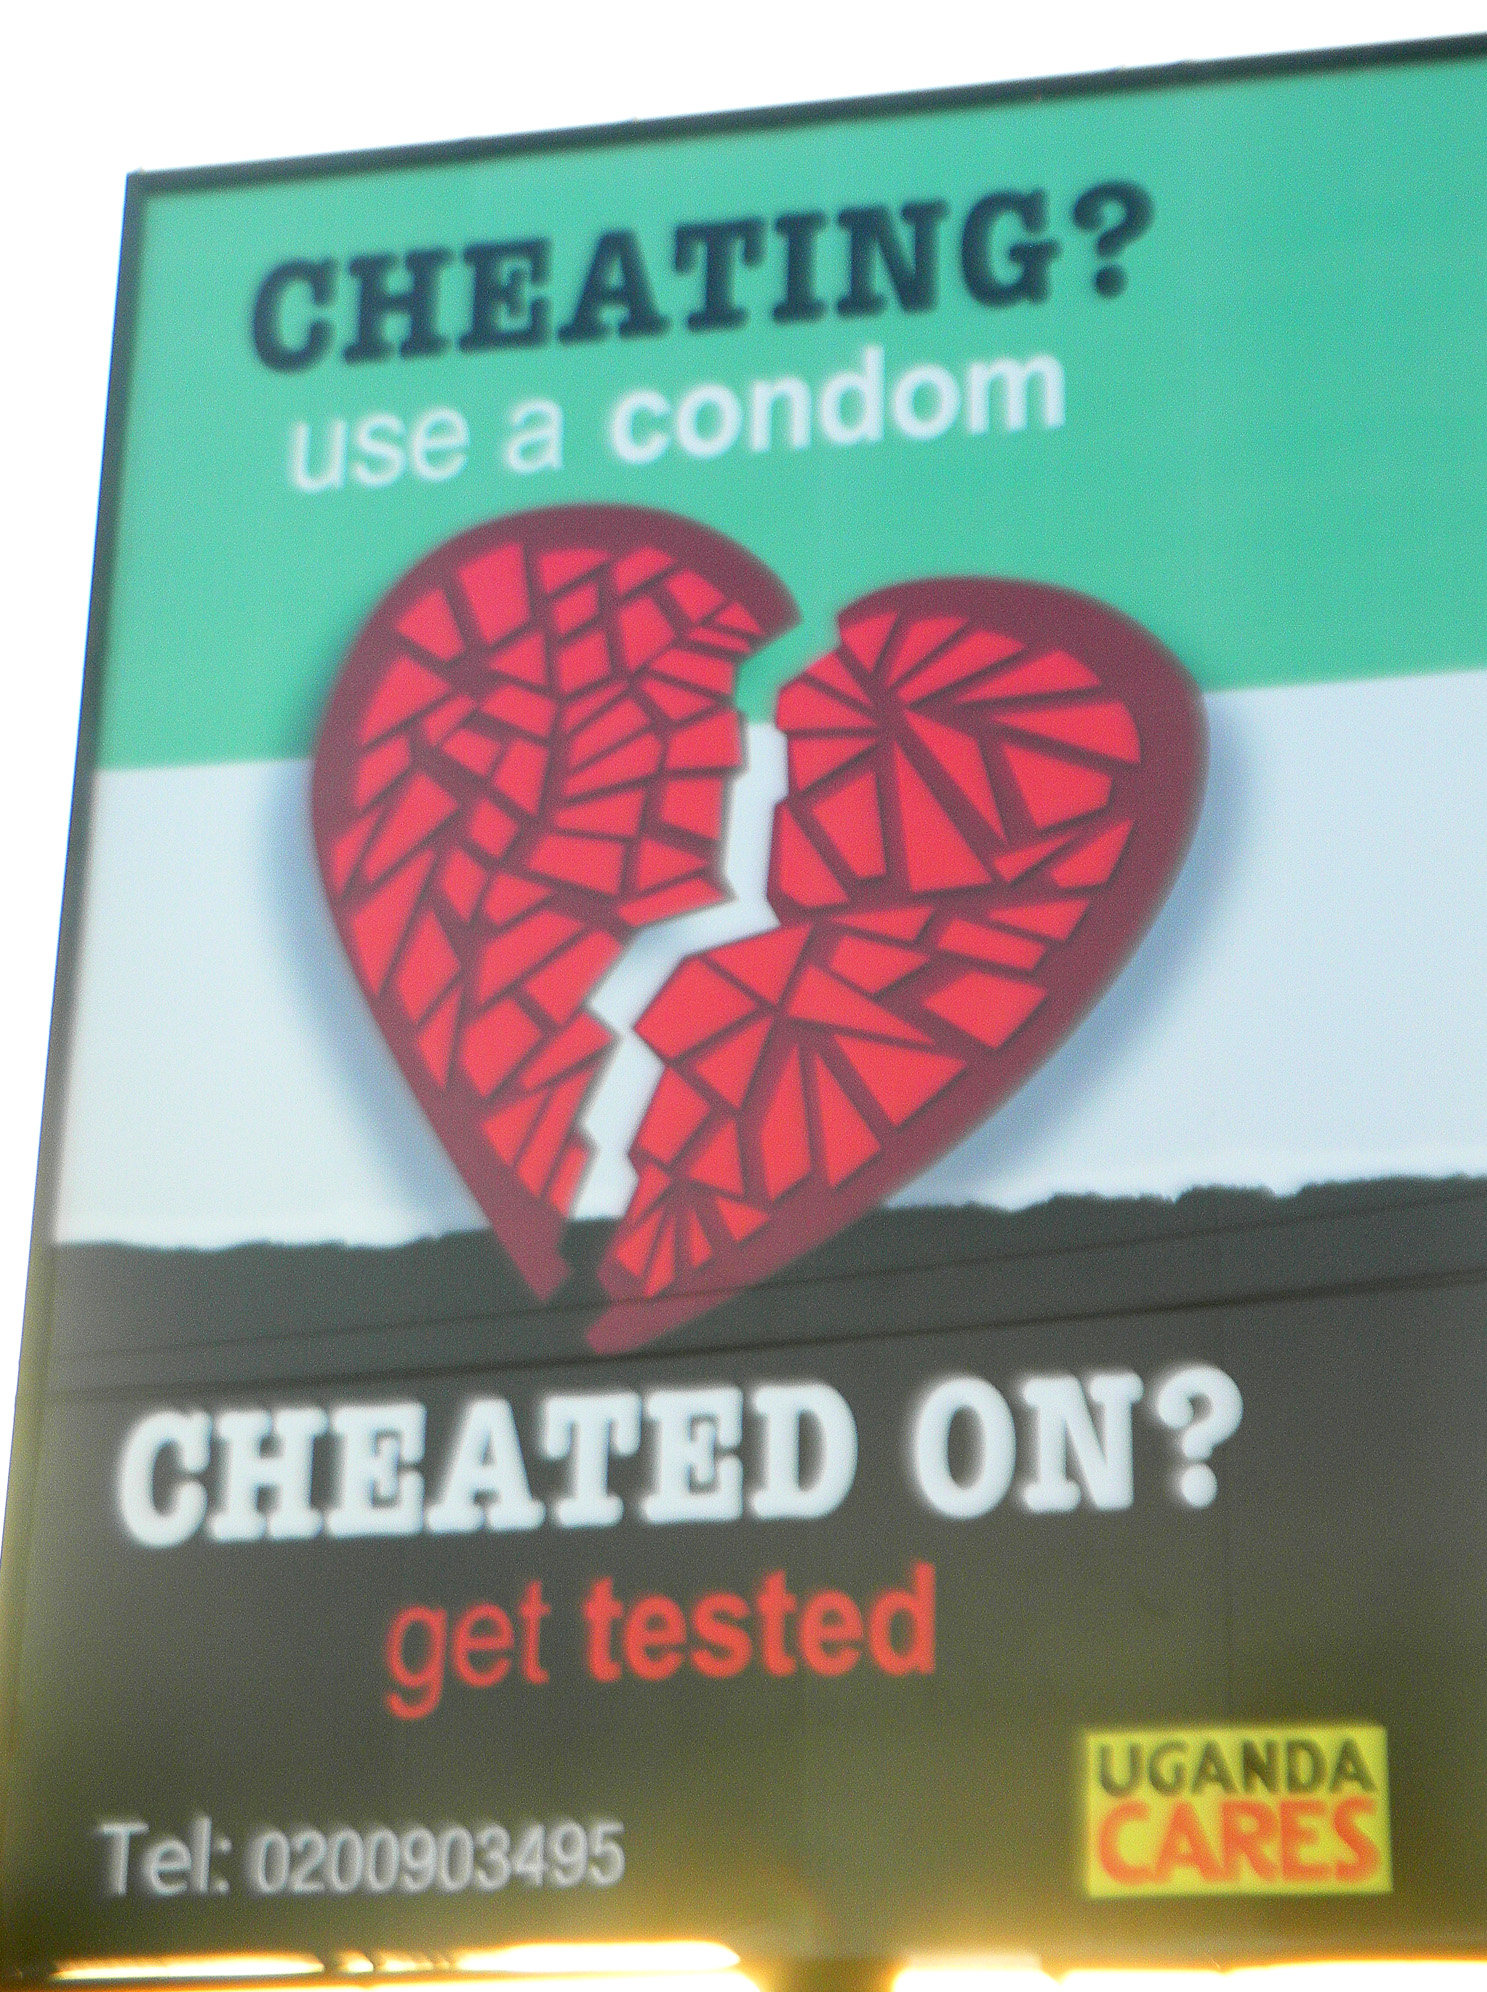 An HIV prevention billboard in Kampala, Uganda